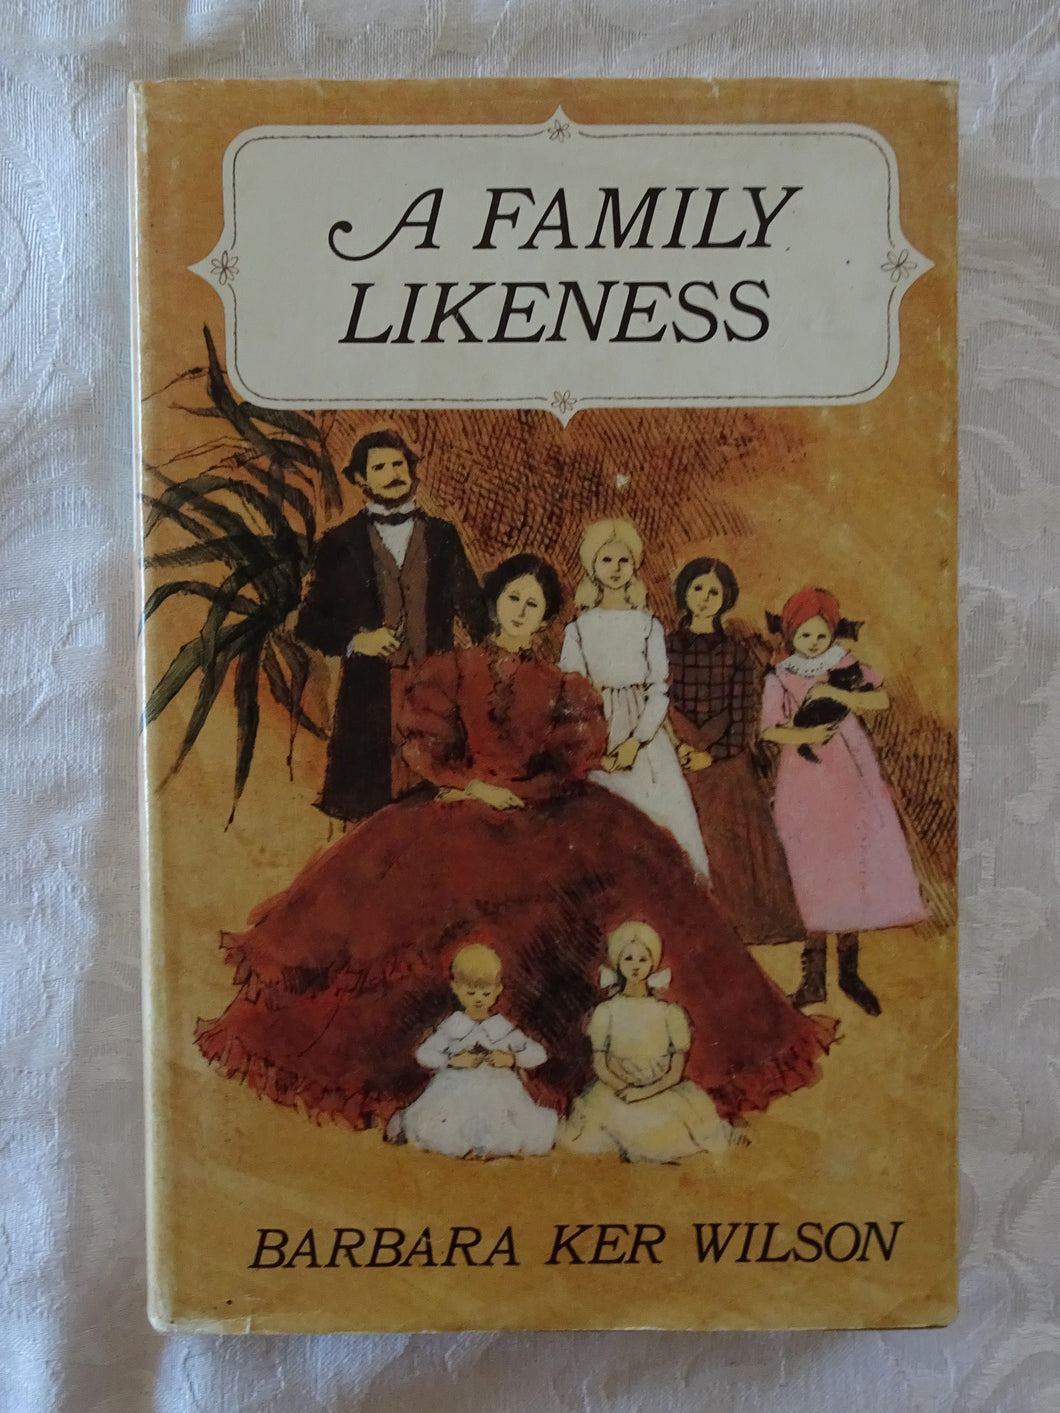 A Family Likeness by Barbara Ker Wilson